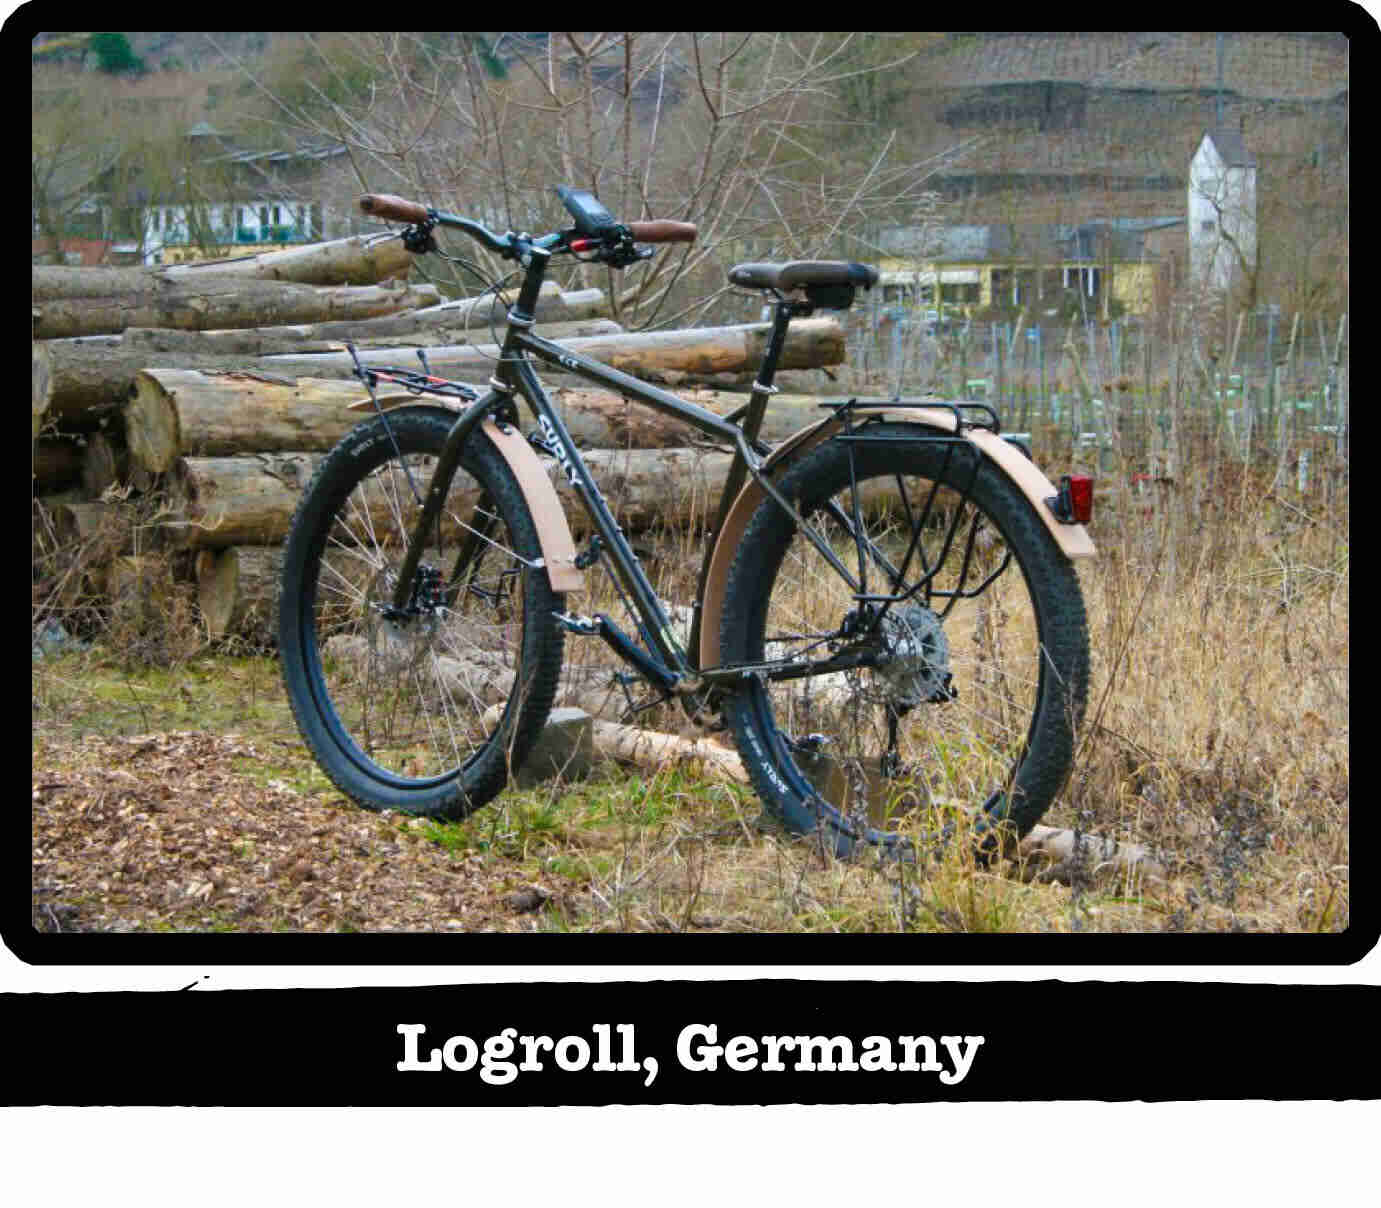 Left side view of a Surly ECR bike, with a pile of longs in background - Logroll, Germany tag below image